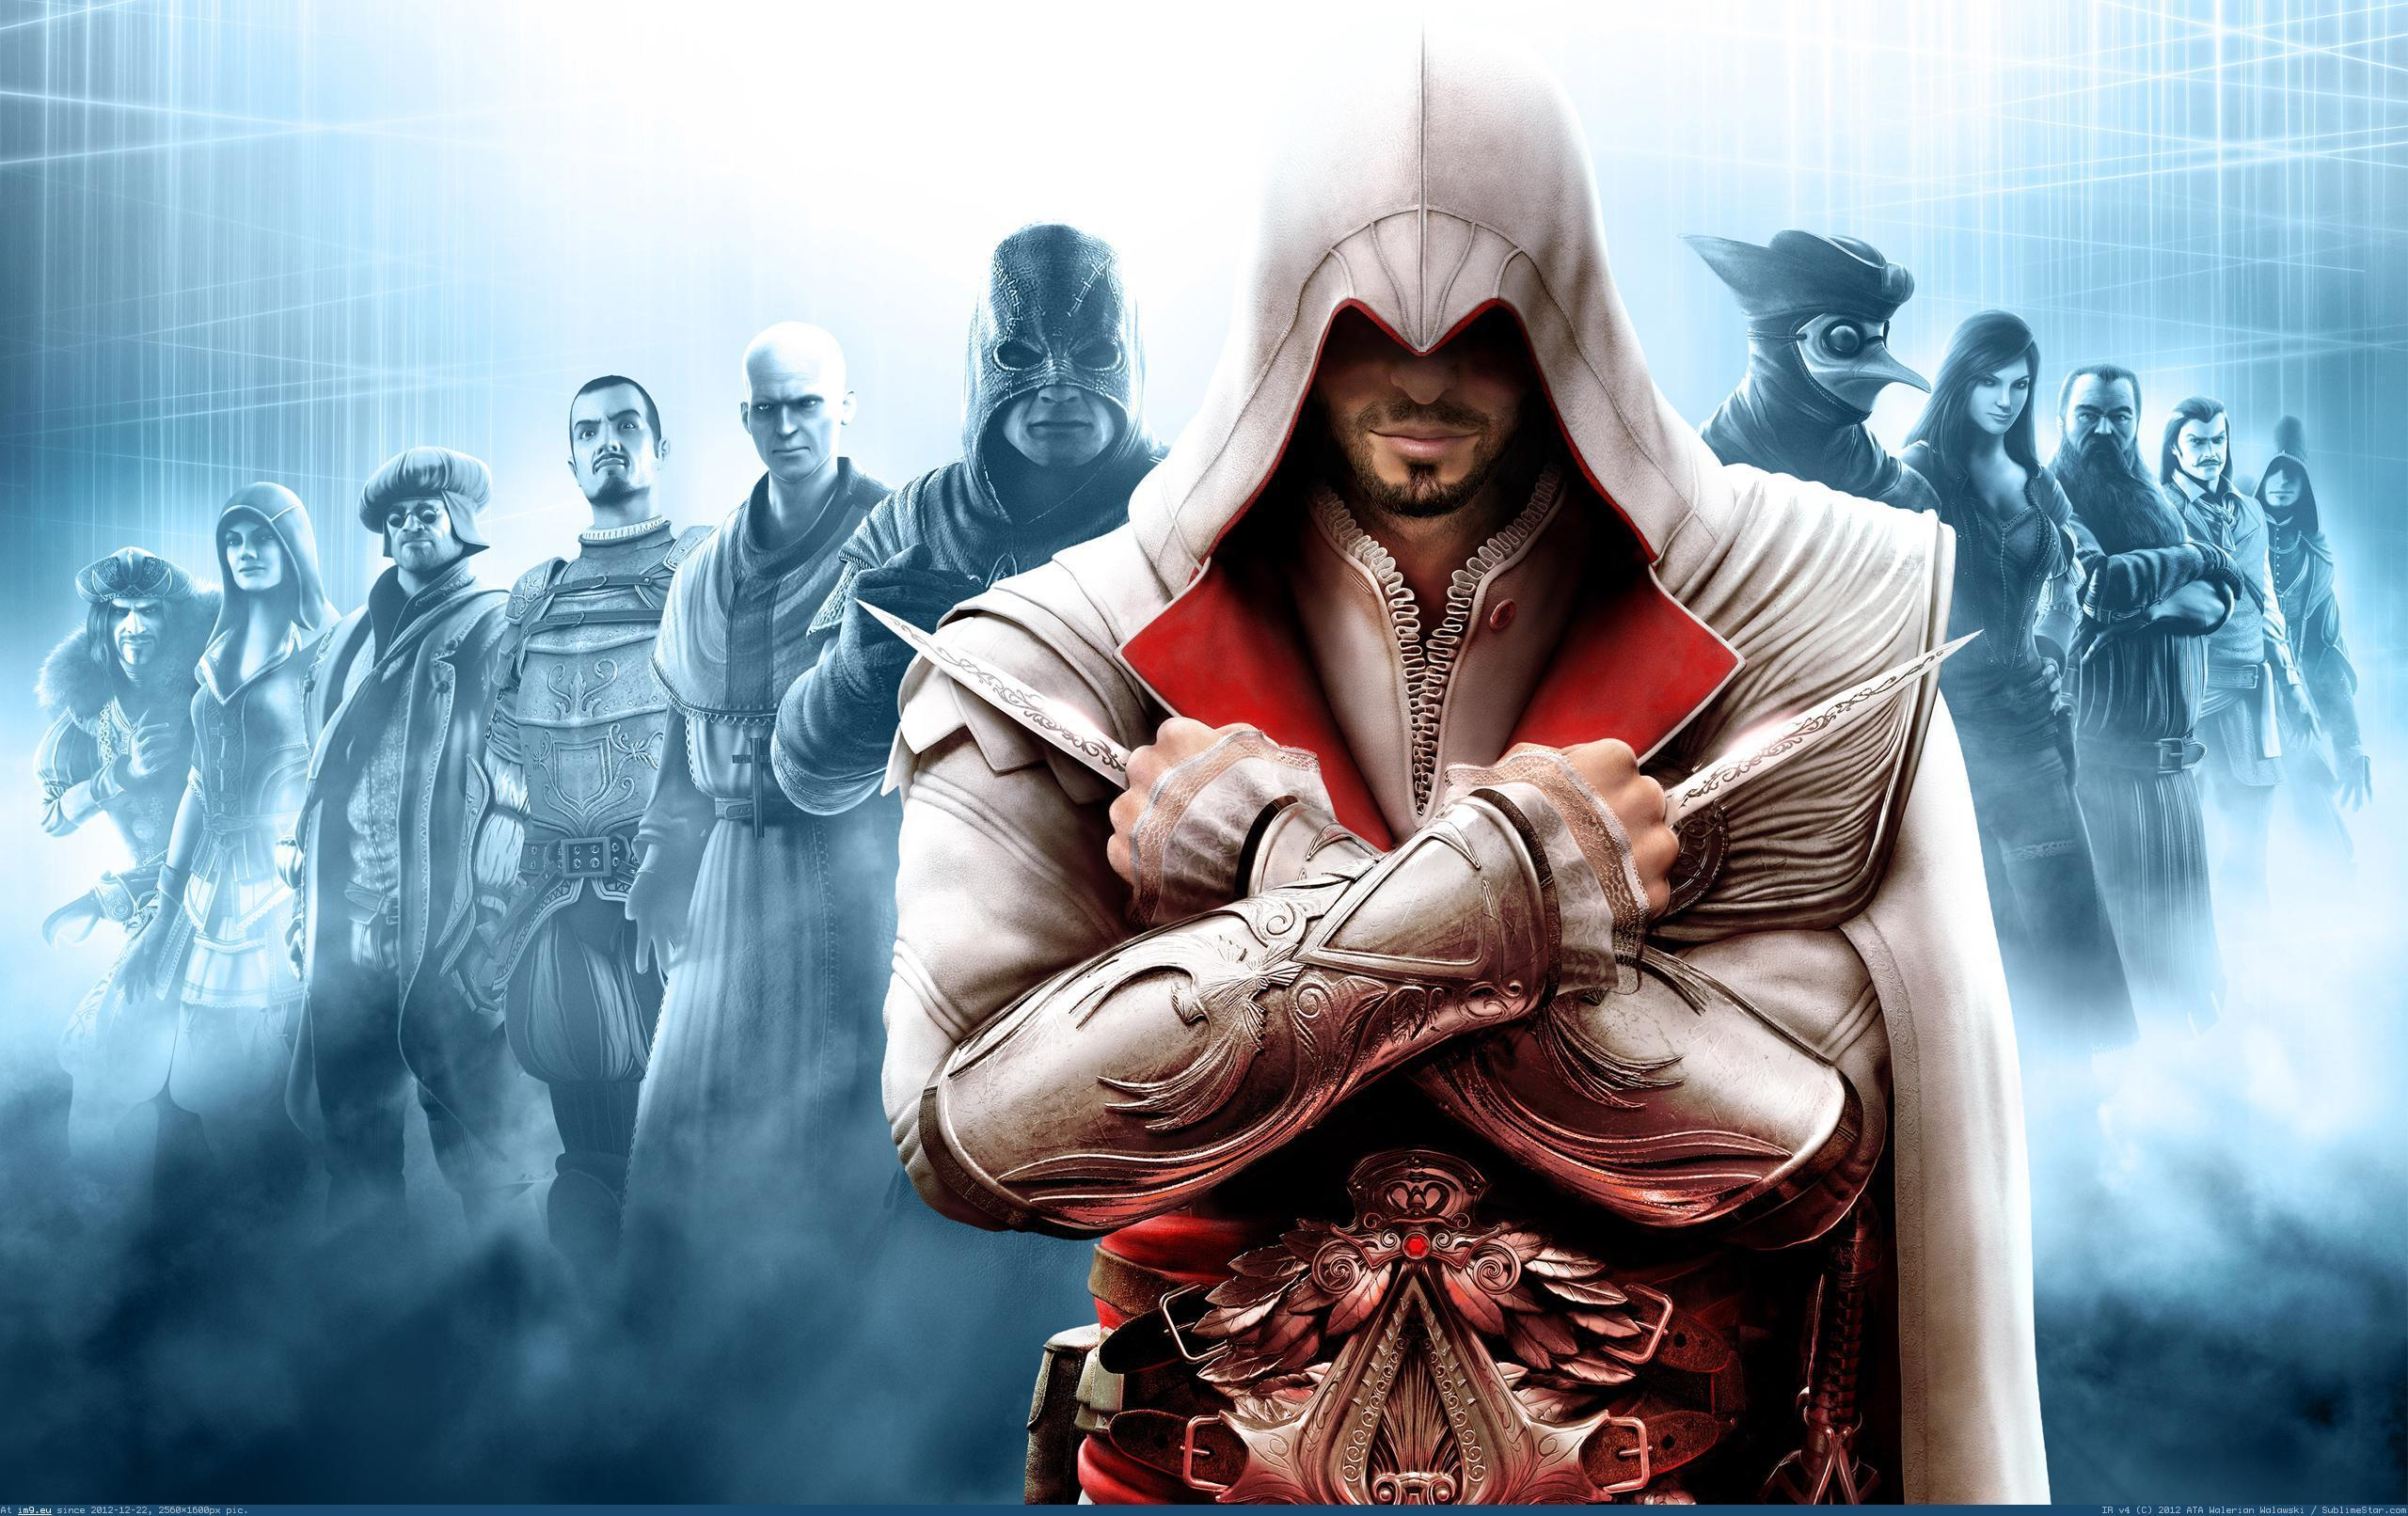 Download Assassin&Creed 3 Wallpapers For Windows 7